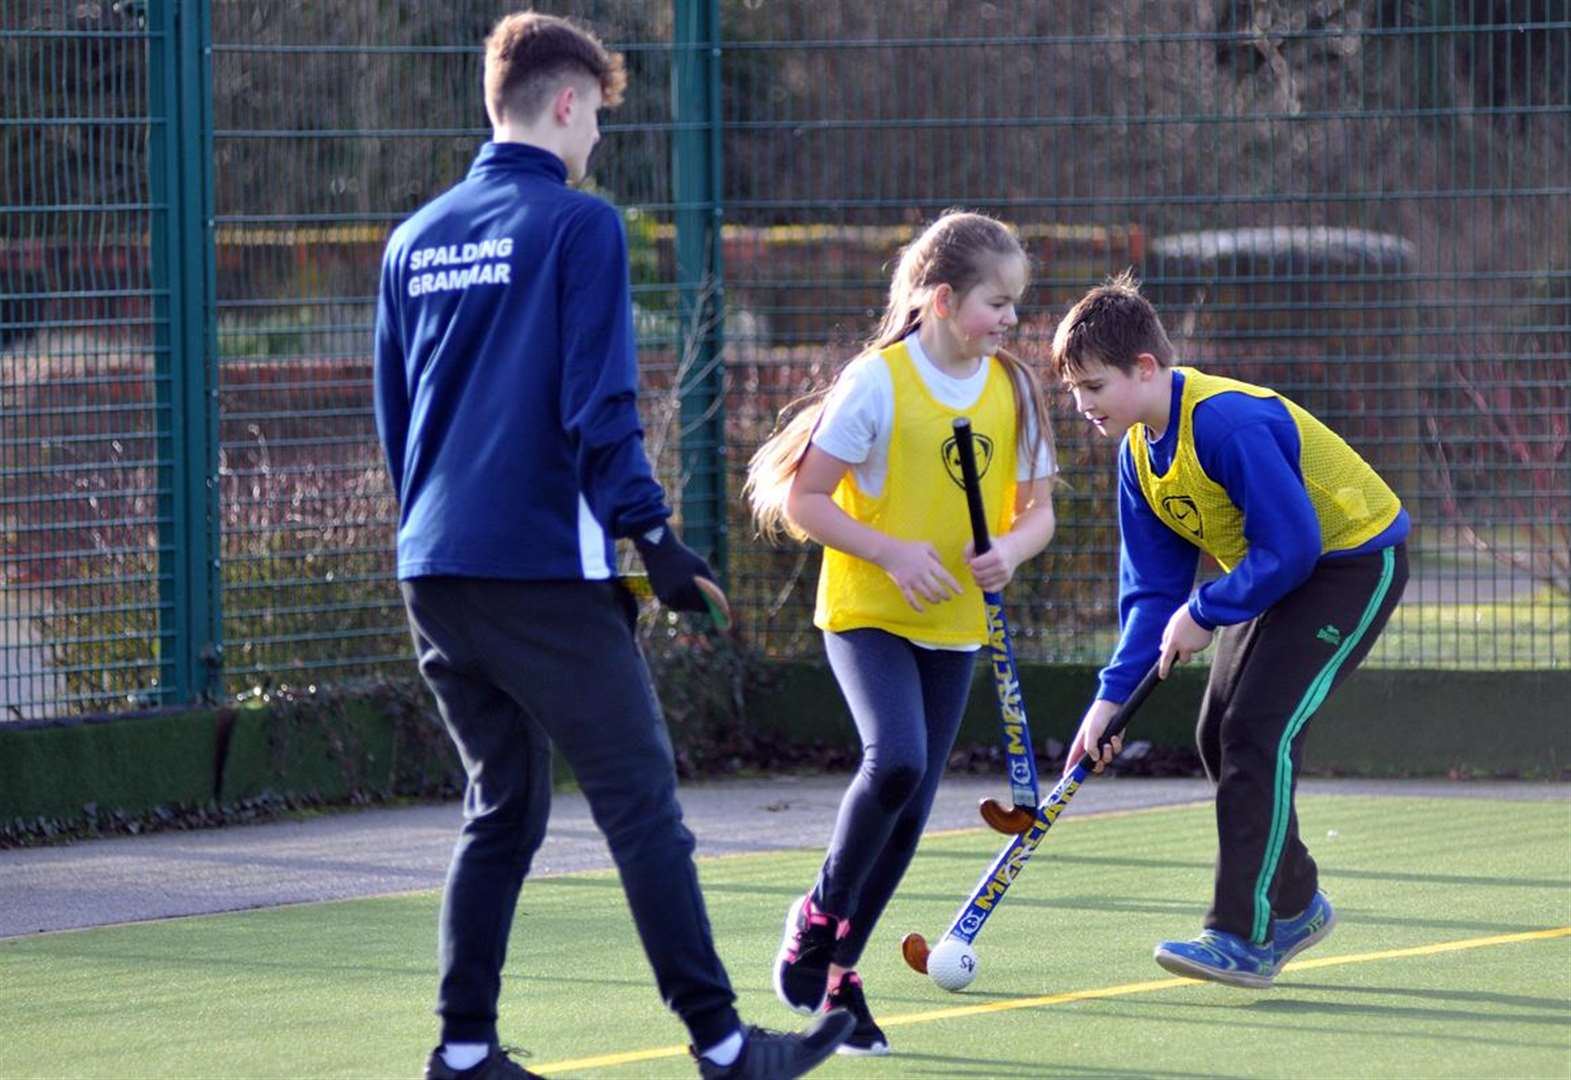 PICTURE GALLERY: Teams from primary schools in the Moultons and Spalding come together for Quicksticks fun